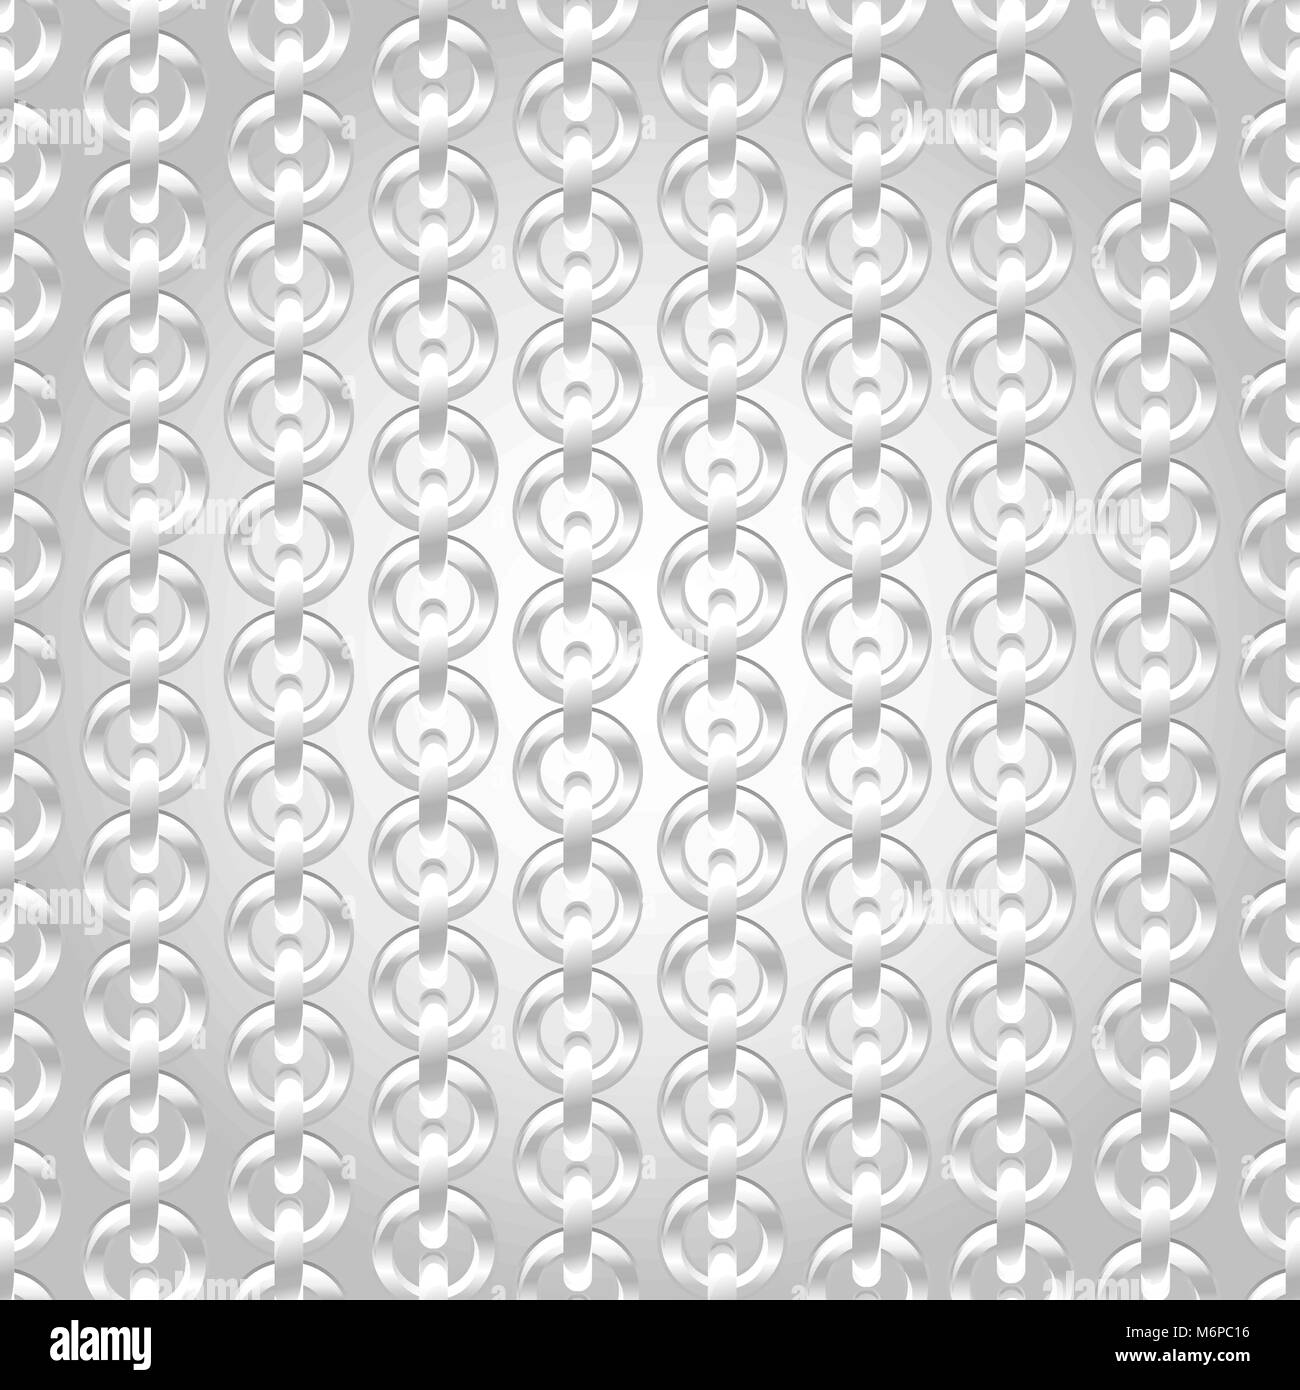 Silver chain seamless abstract pattern - Stock Image